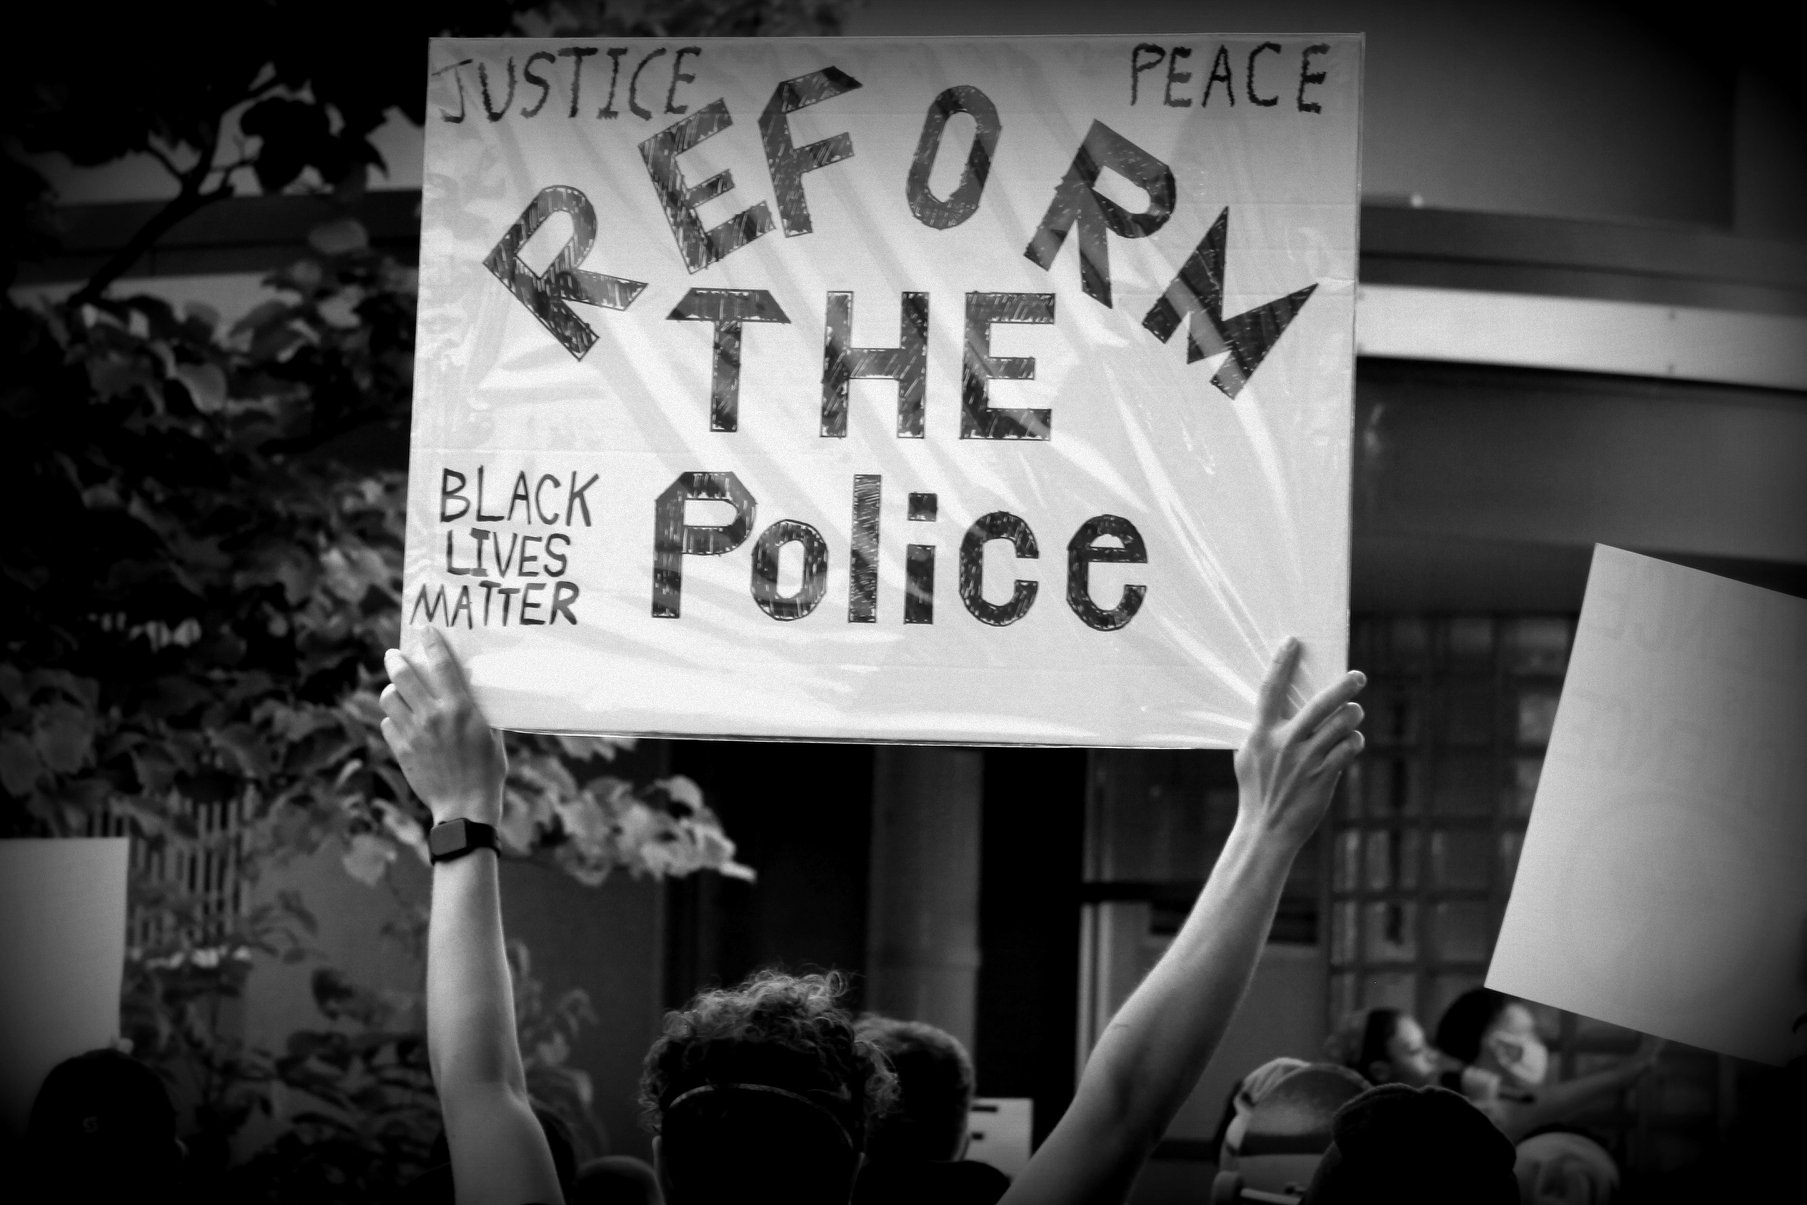 BLM protest, BLM protest auburn wa, blm protest auburn wa june 2, black lives matter protest auburn wa, black lives matter, black lives matter protest, city of auburn blm, I can't breathe, I can't breathe protest, blm I can't breathe, George Floyd protest, auburn wa George Floyd protest, auburn wa police brutality, police brutality protest, jesse sarey protest, ej Strickland protest